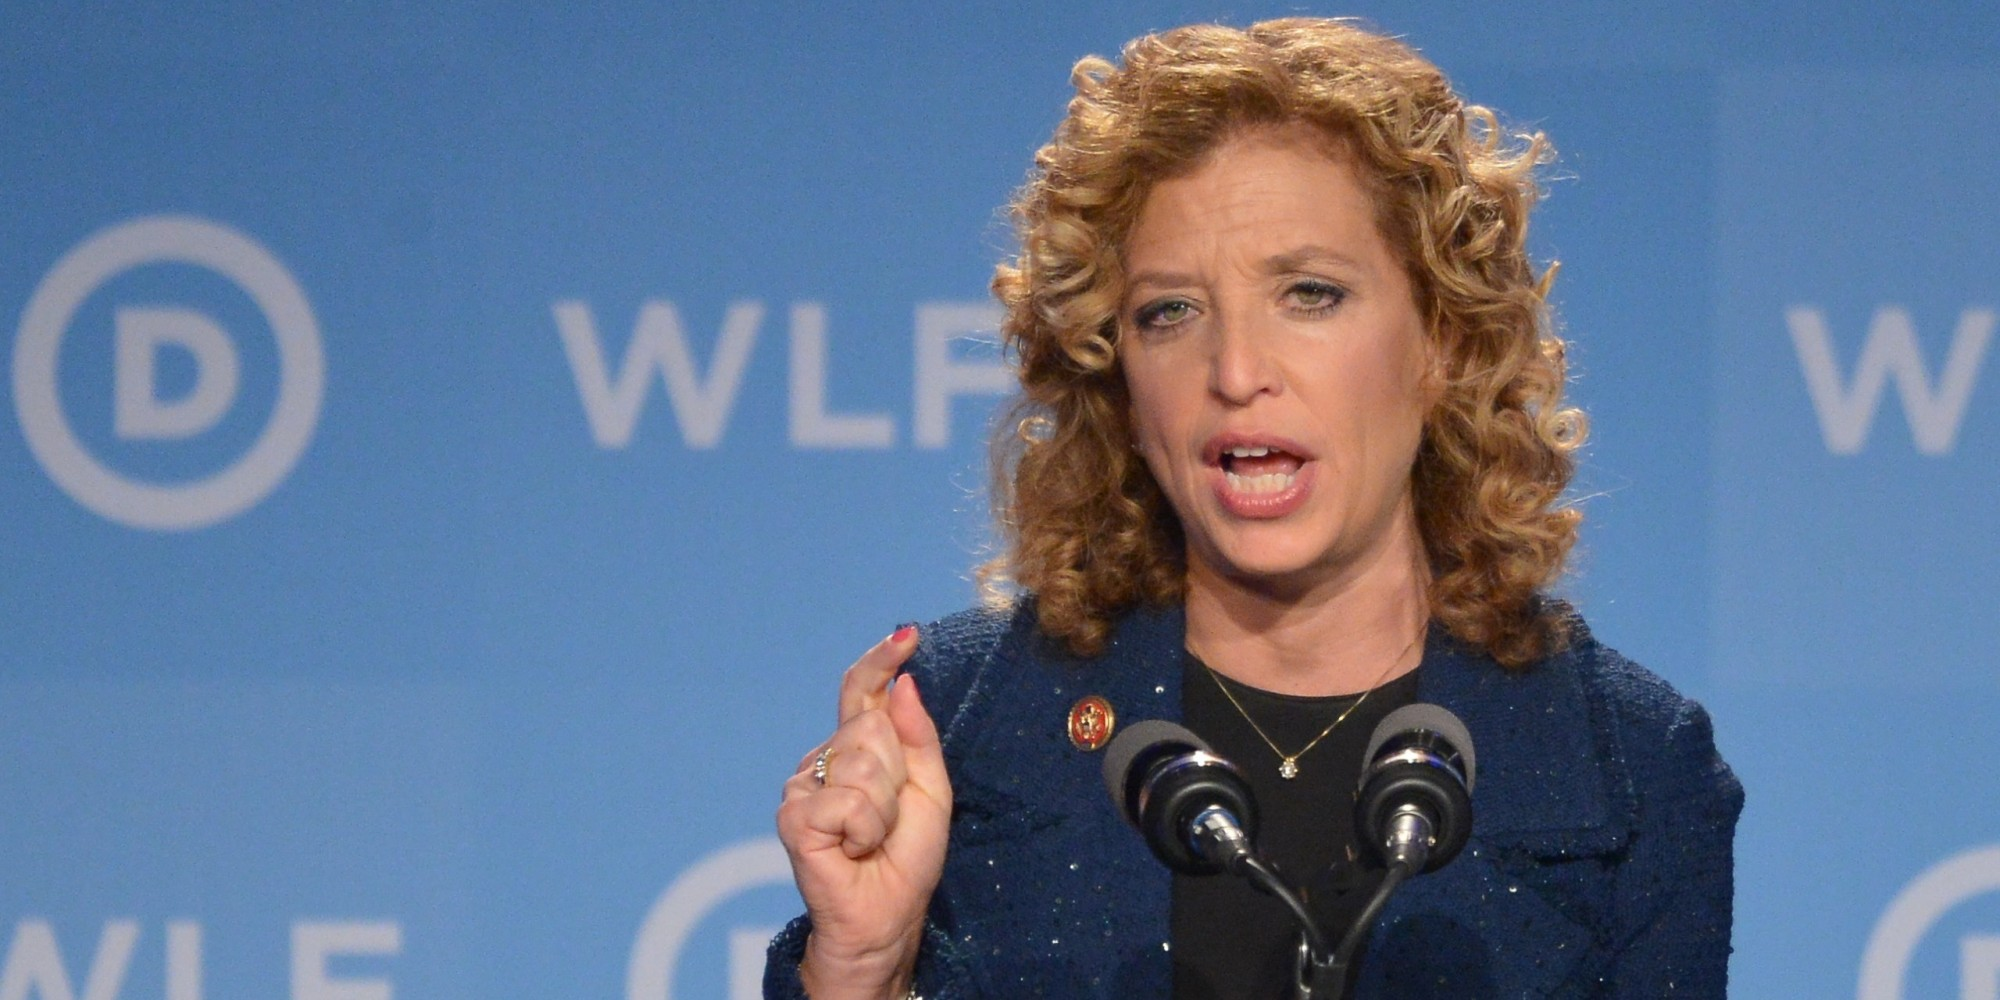 The vitriol flung at Democratic National Committee Chairwoman Debbie Wasserman Schultz doesnt square with how her friends and advisers see her